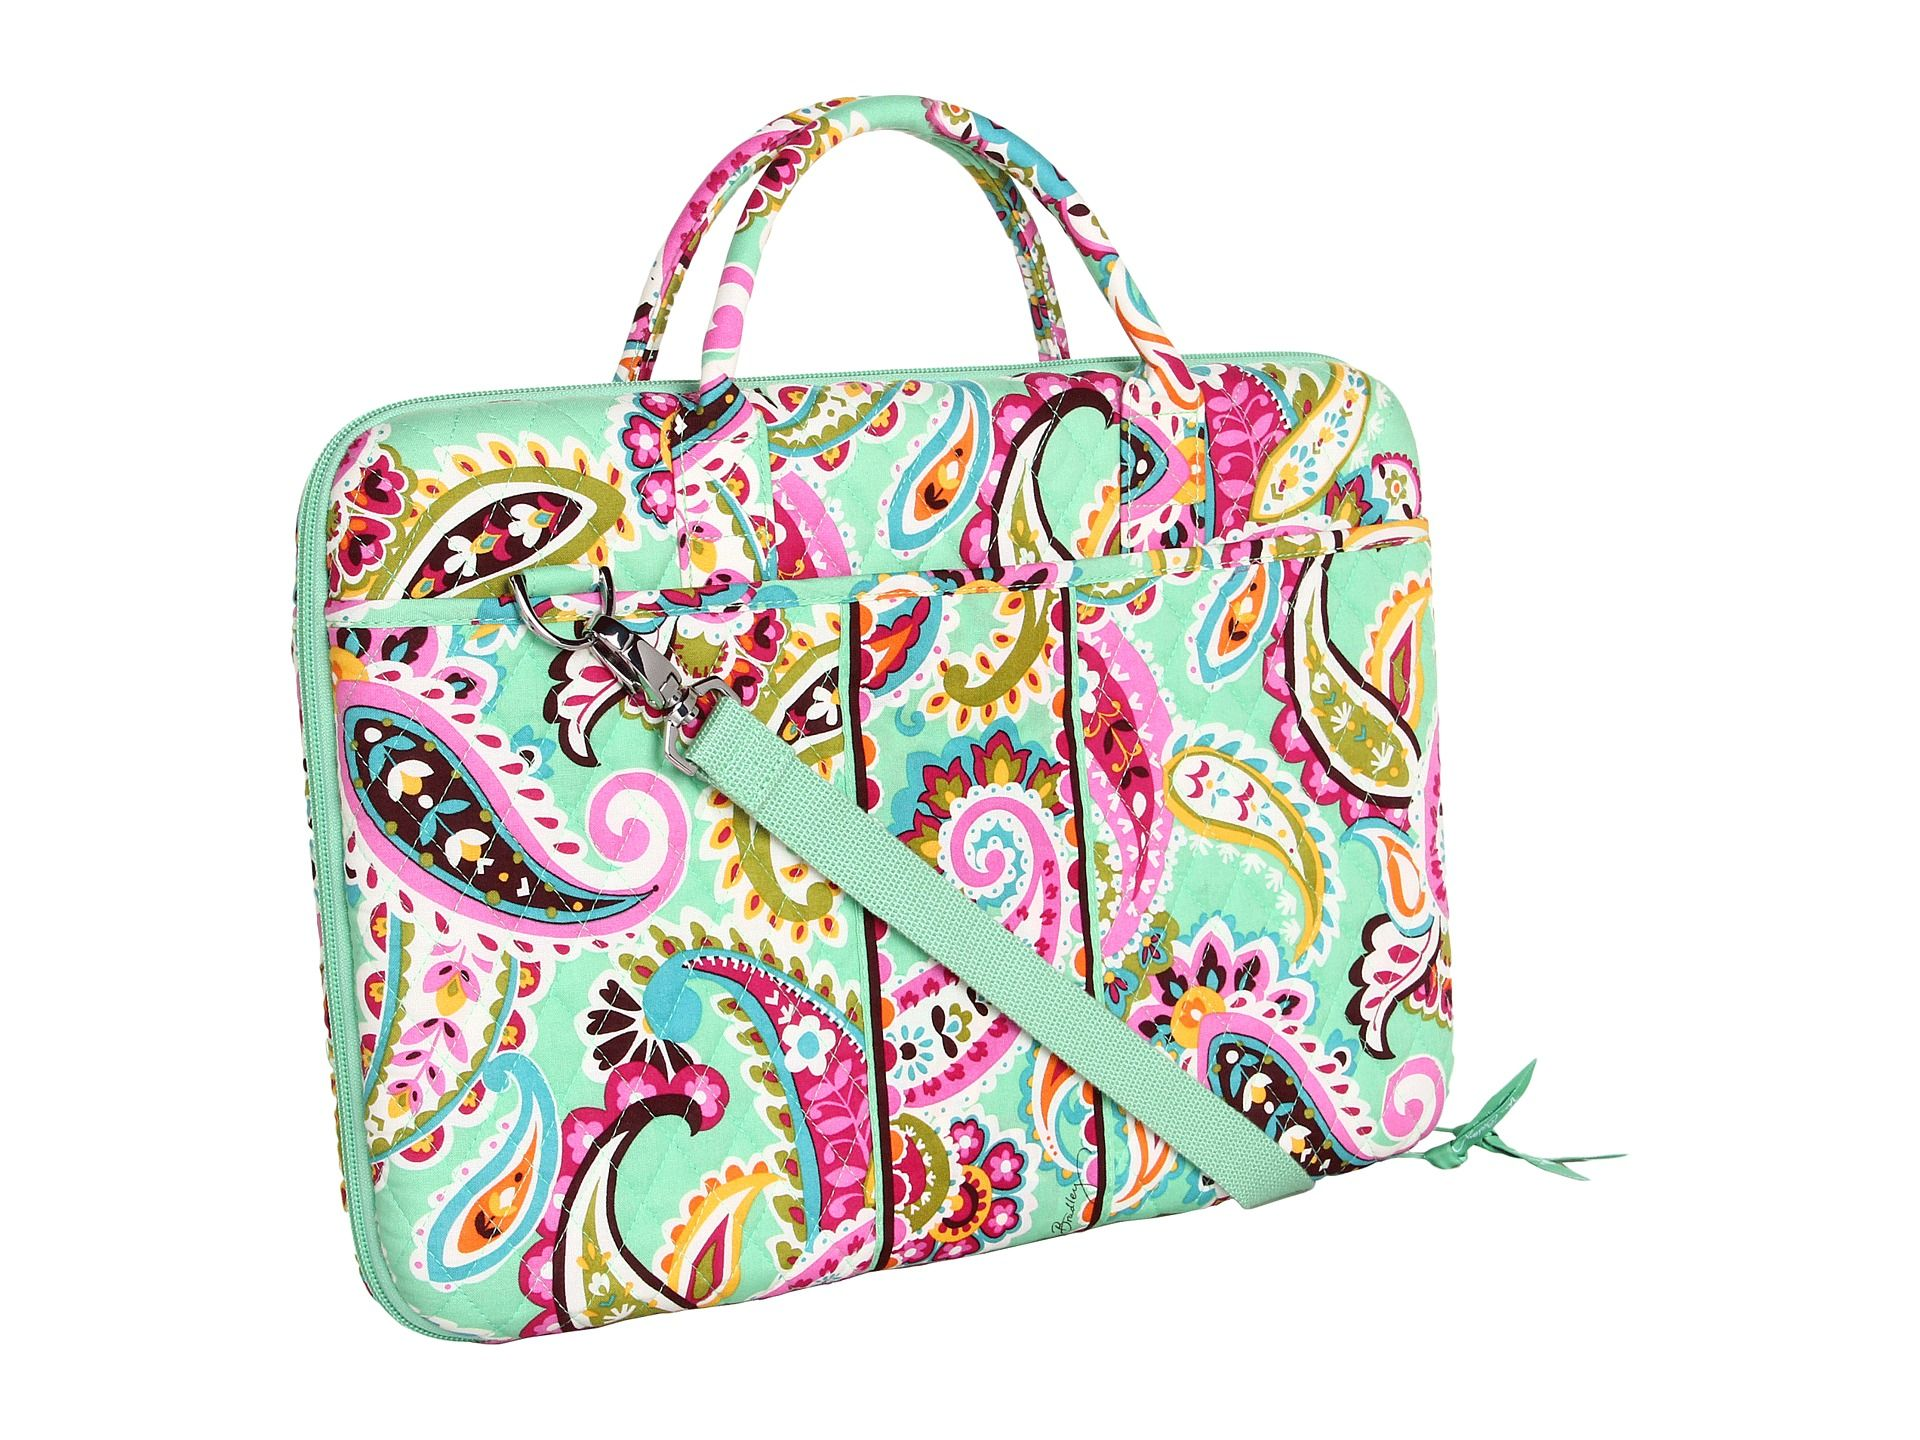 vera bradley tutti frutti laptop case - Got it for my laptop and I love the  pattern! The case itself is so nice 16837f5a1c23d